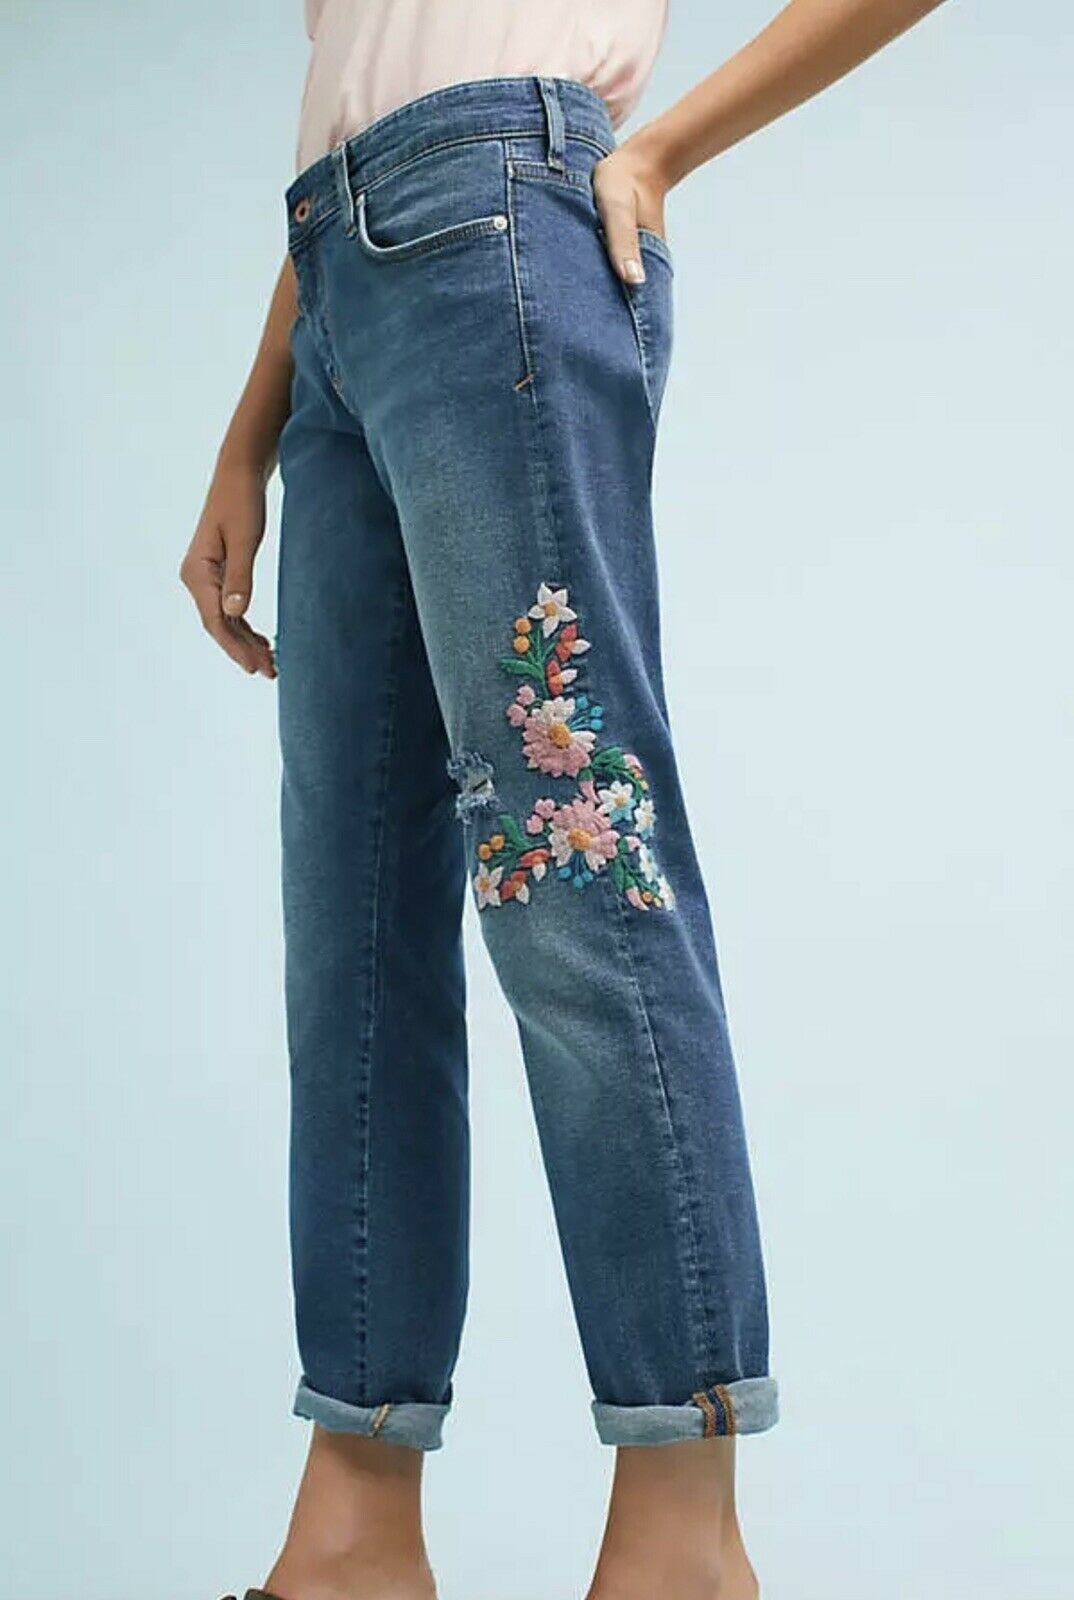 NEW Anthropologie Pilcro Distress Floral Embroidered Mid Rise Stretch Jeans 28